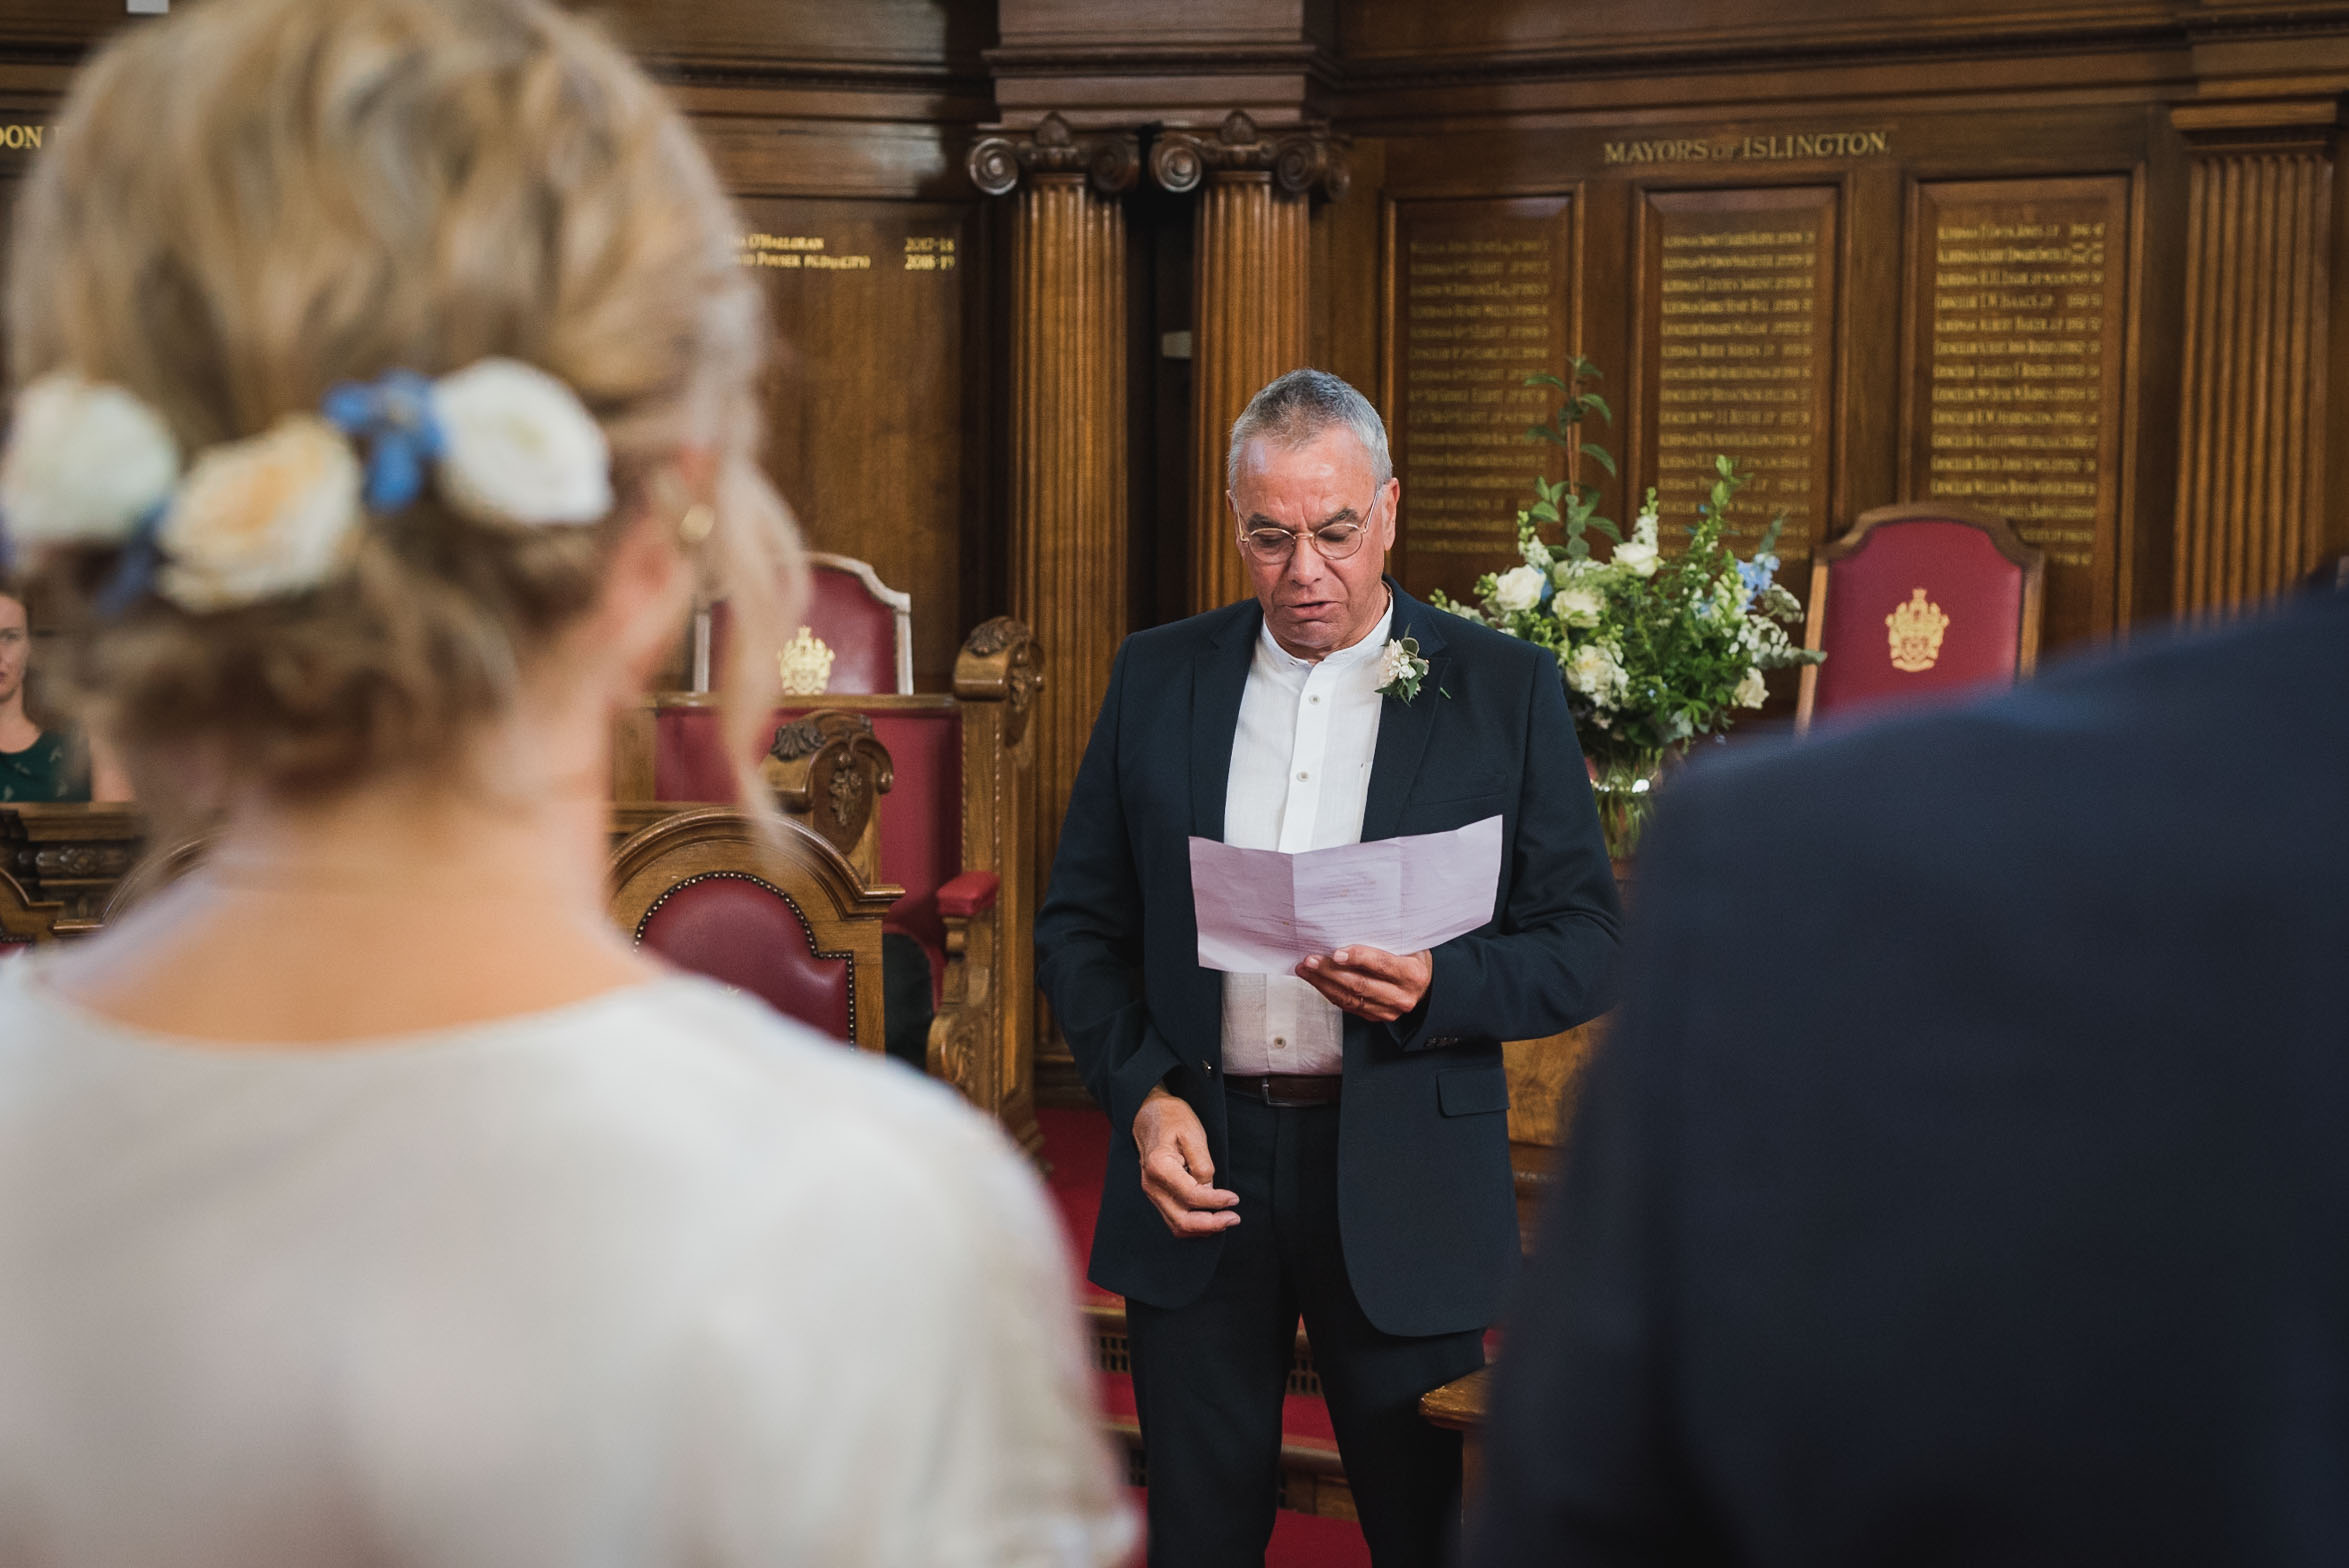 carine bea photography, islington hall wedding, father of the groom speechs